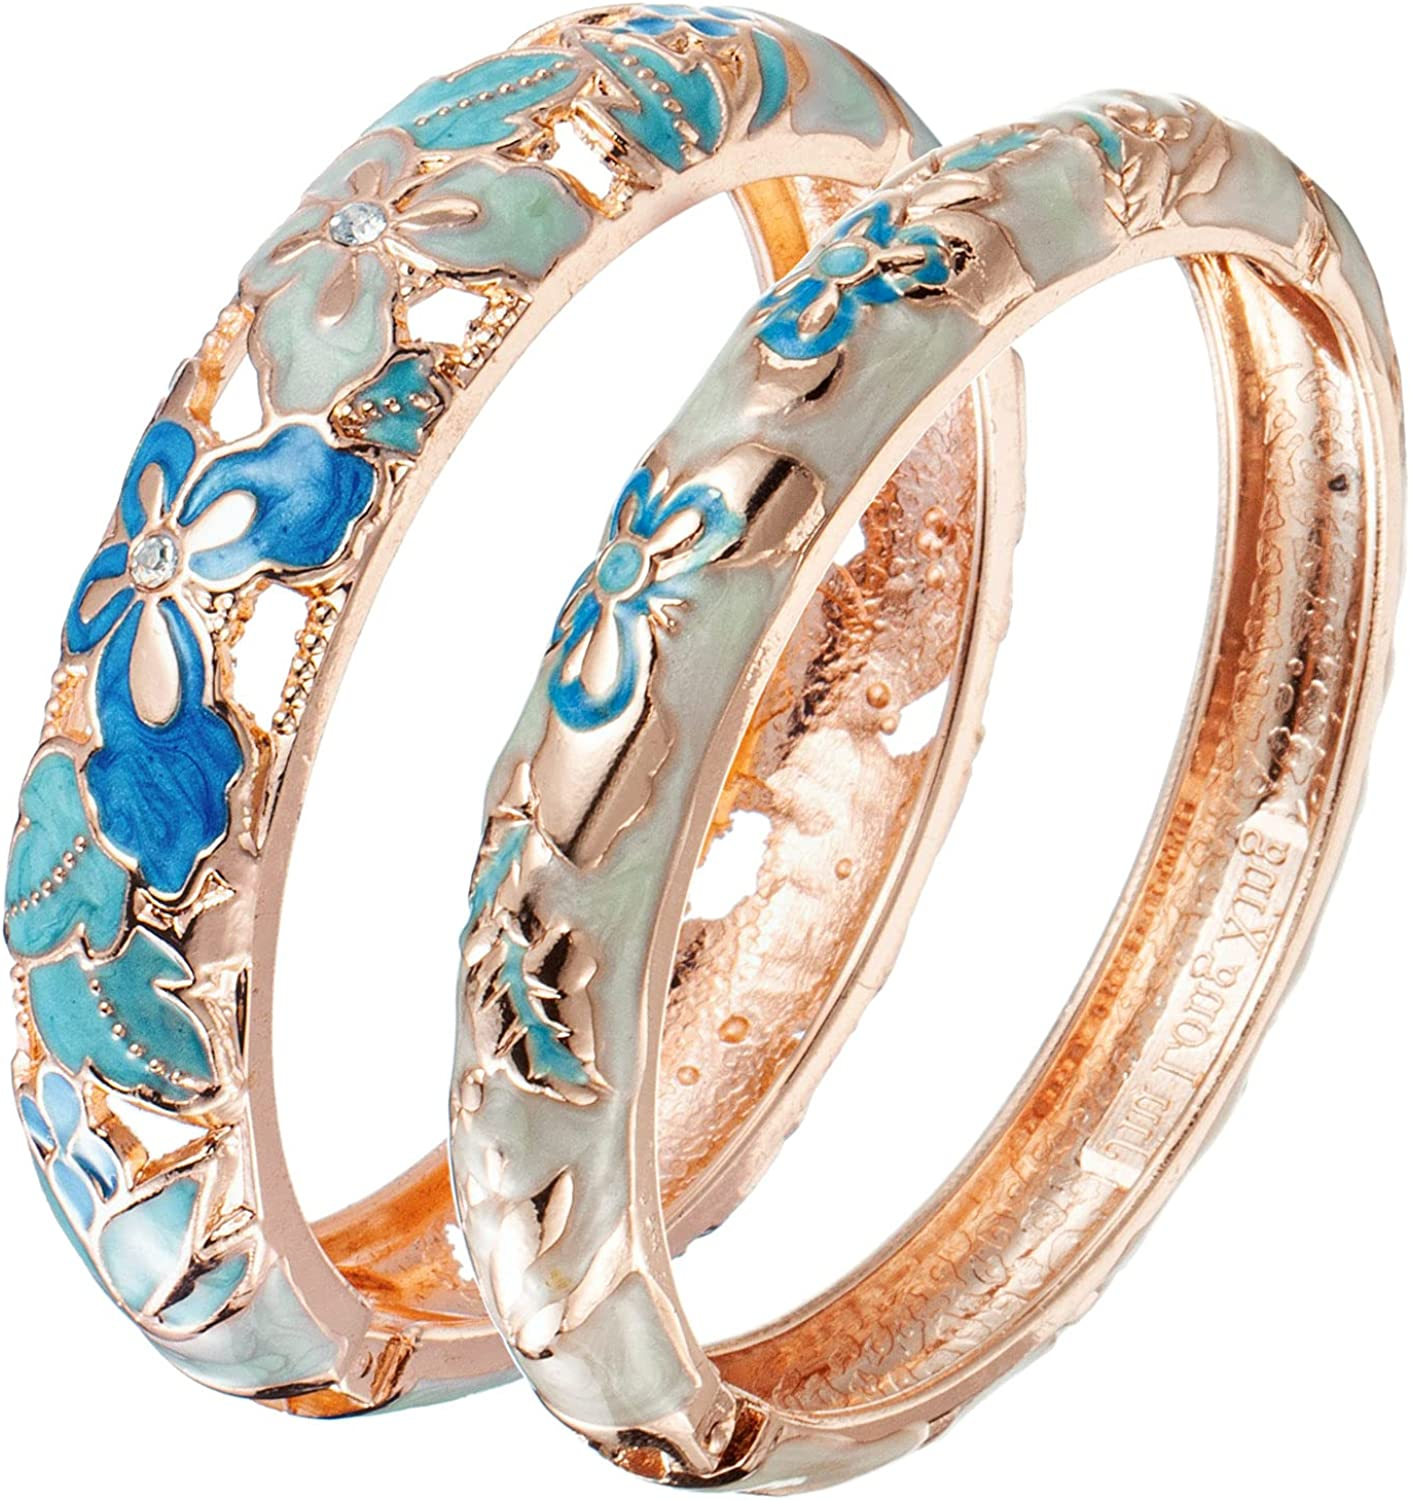 UJOY Bracelet Cloisonne Jewelry Fashion Opening Hinged Bangles Crafted Blue Colored Enamel Flower Gifts for Women 88A11